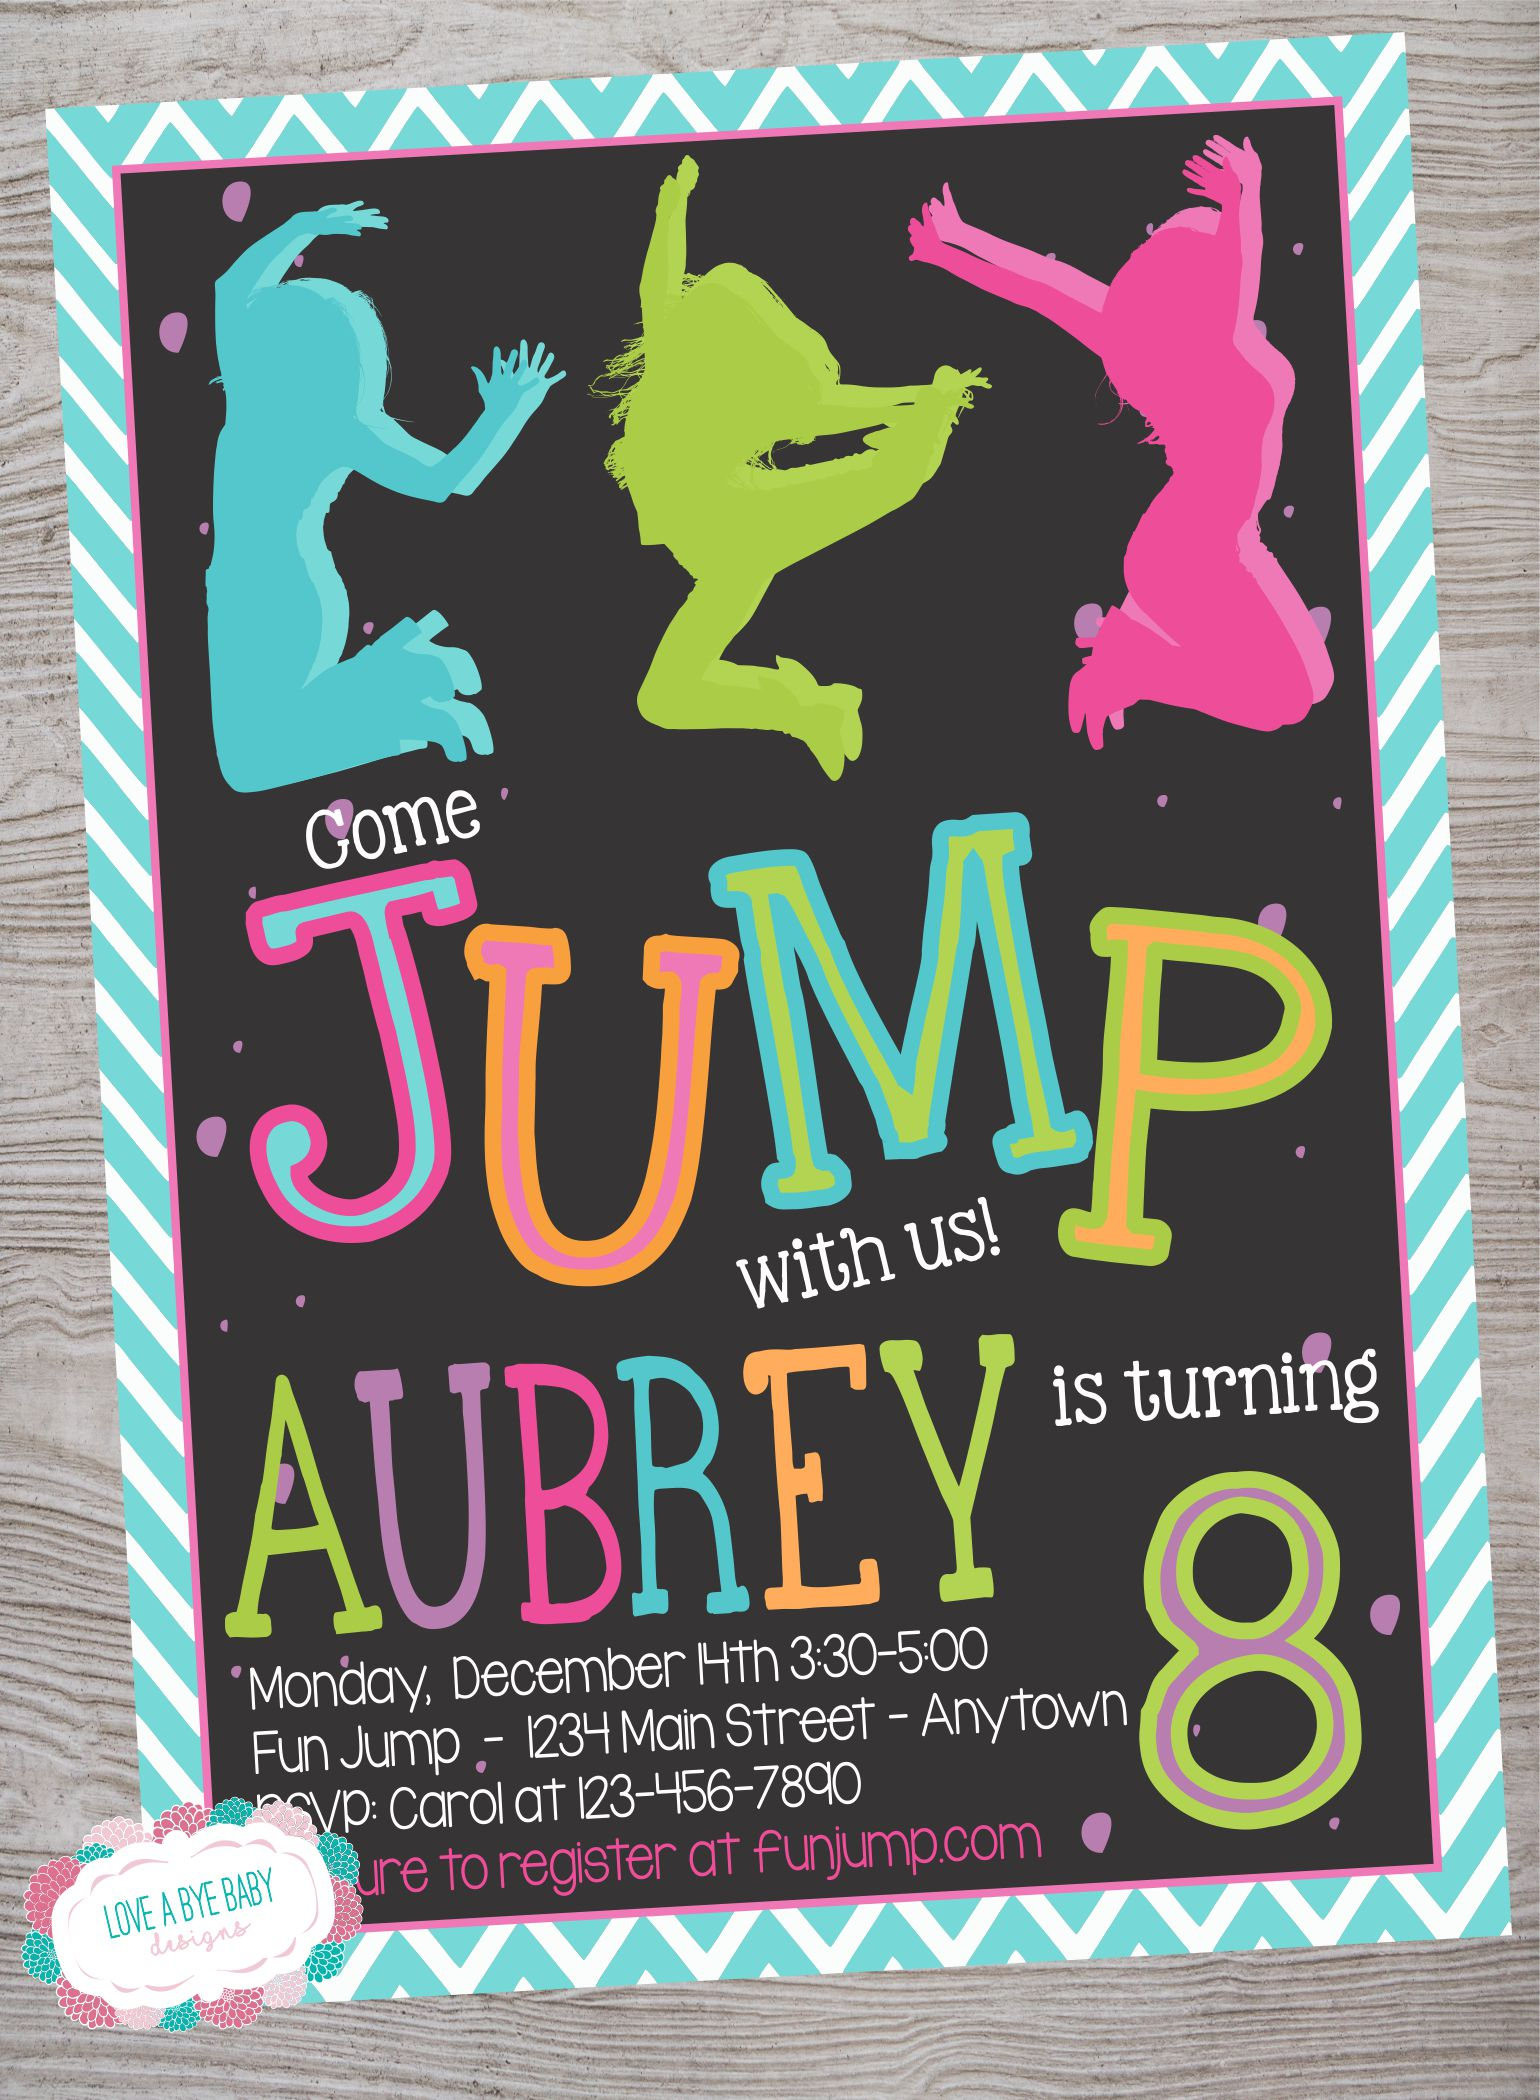 Best ideas about Trampoline Birthday Party Invitations . Save or Pin Jump trampoline park birthday party invitation printable Now.